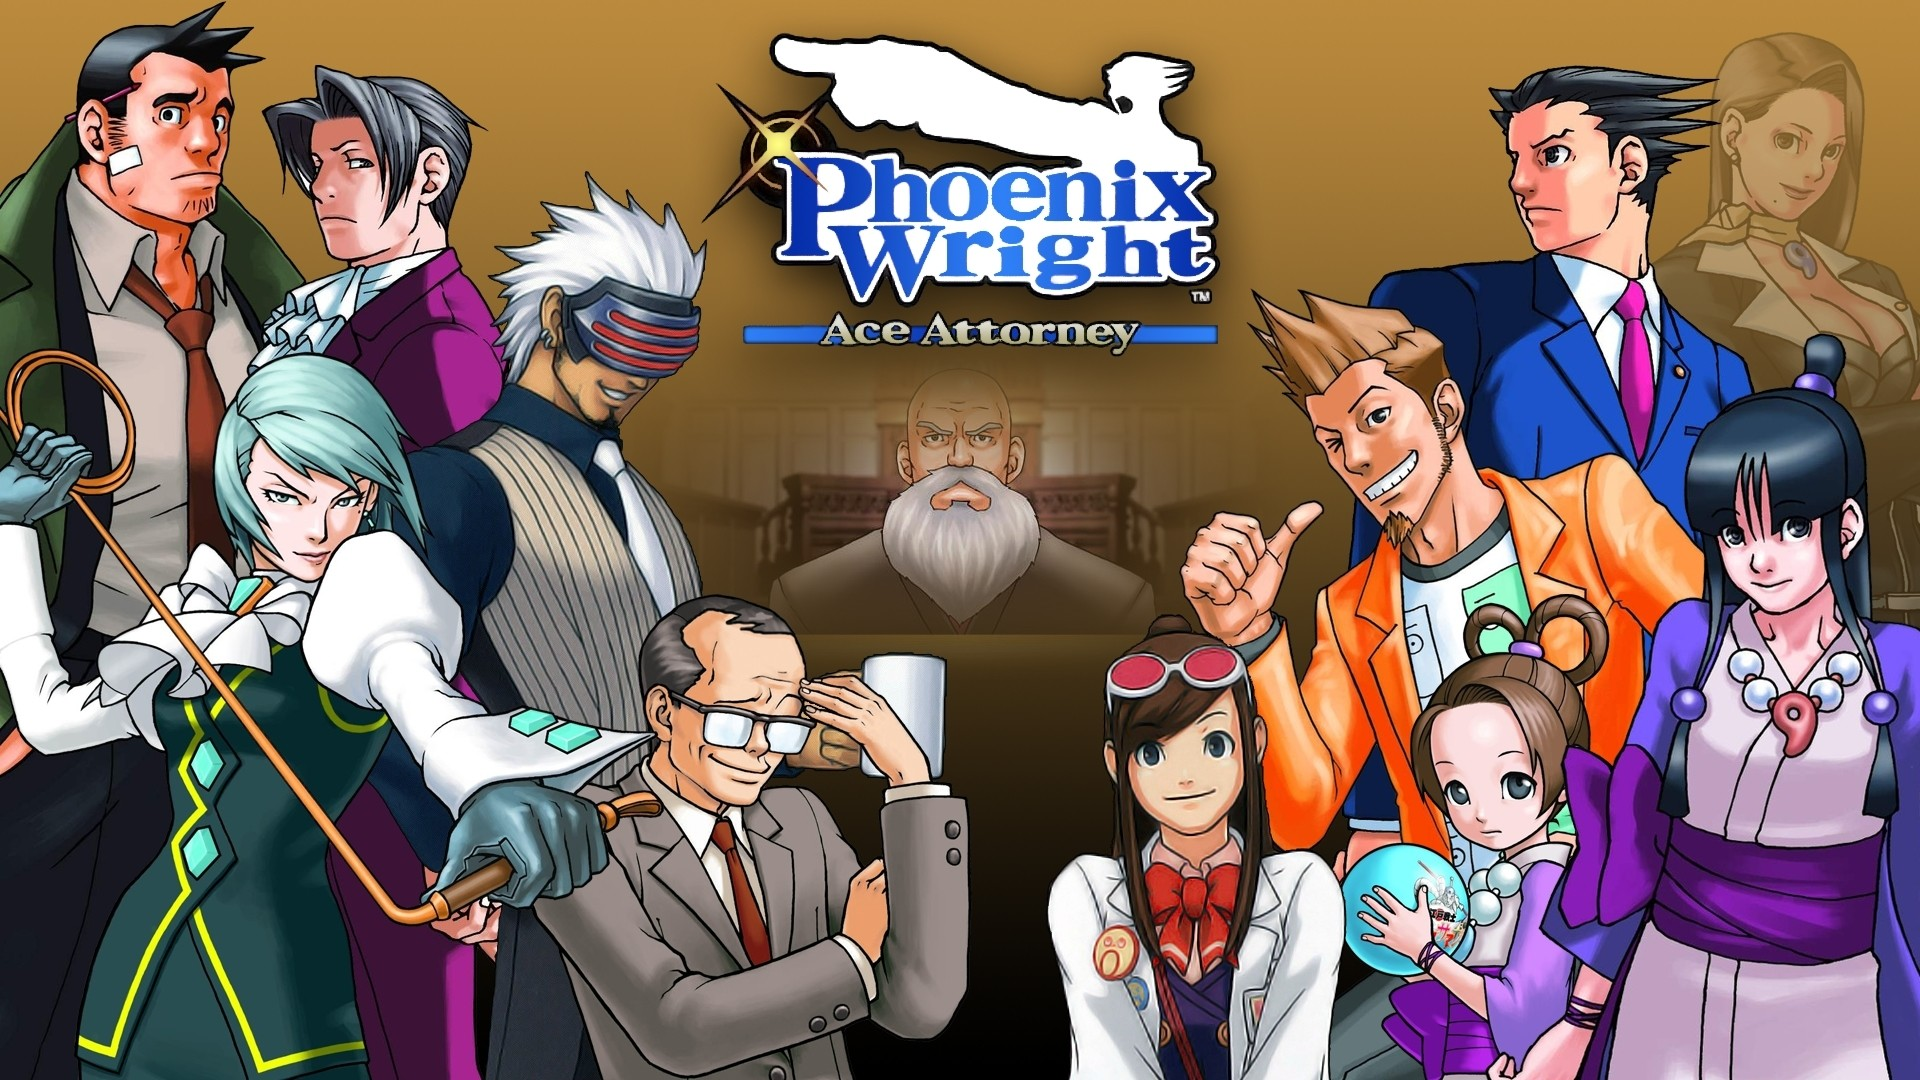 Phoenix Wright Ace Attorney Wallpaper 65 Images